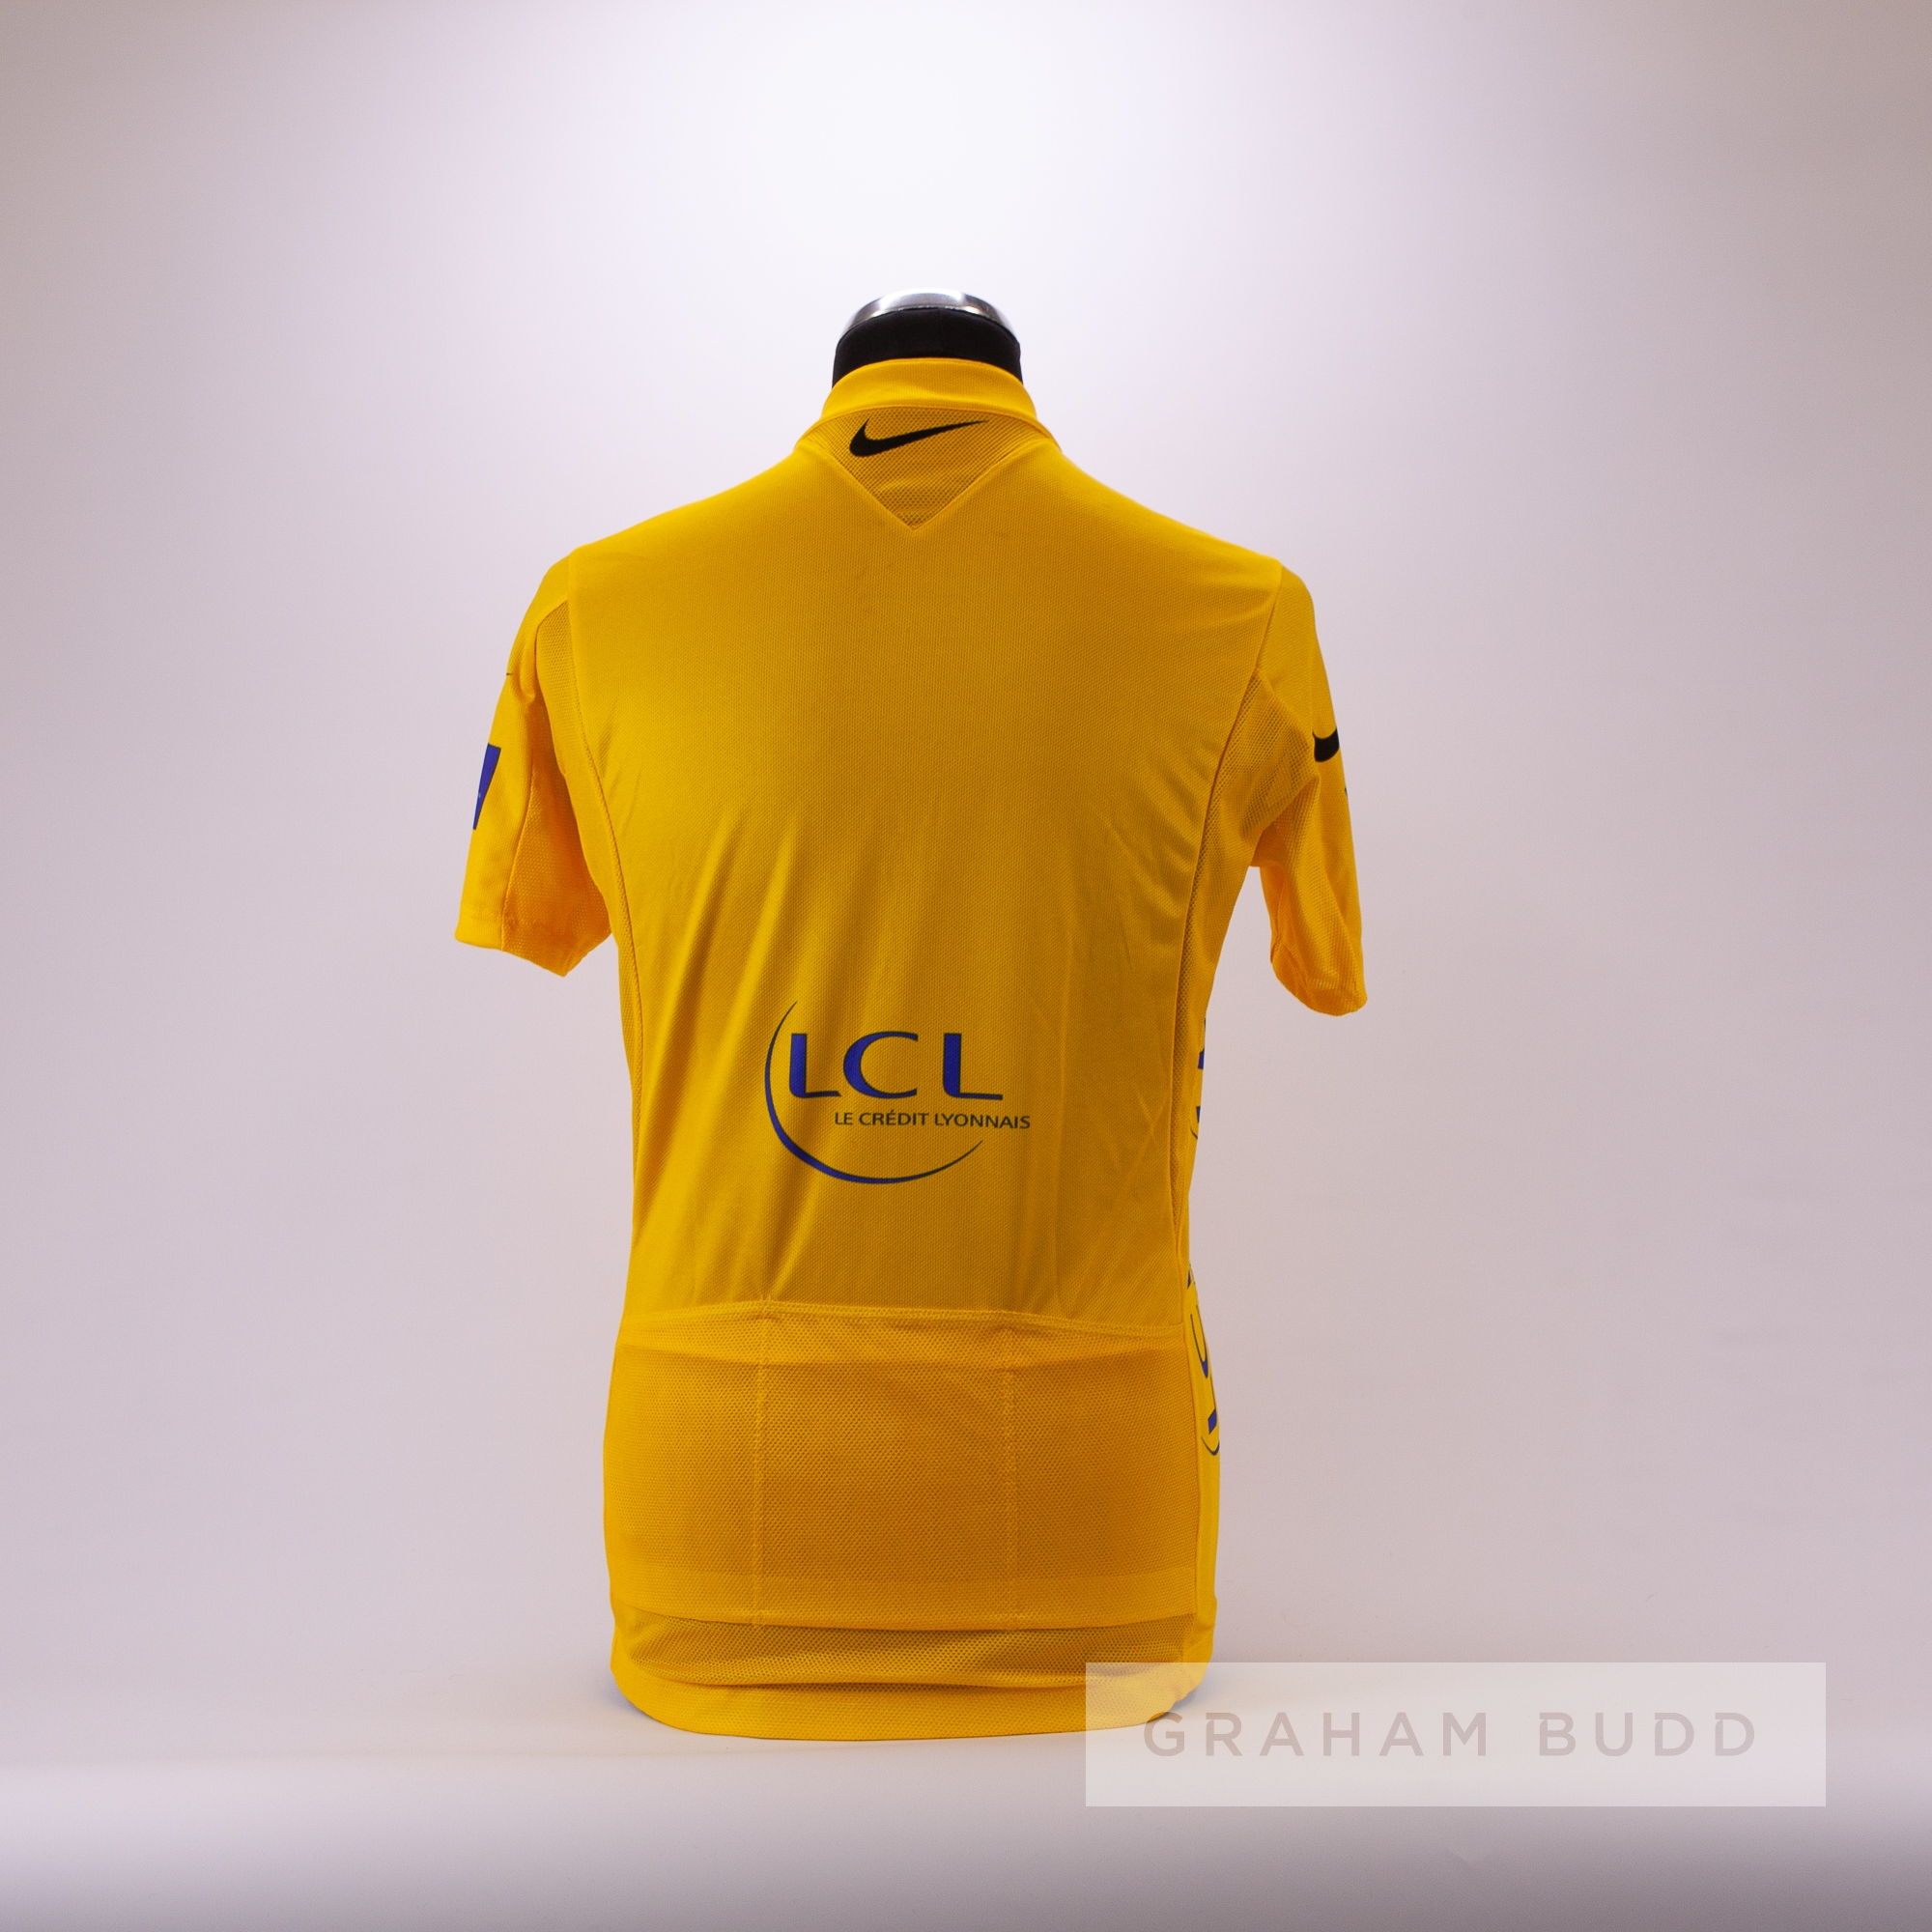 2006 yellow and blue Tour de France Nike LCL Leaders Cycling race jersey, scarce, polyester short- - Image 4 of 4